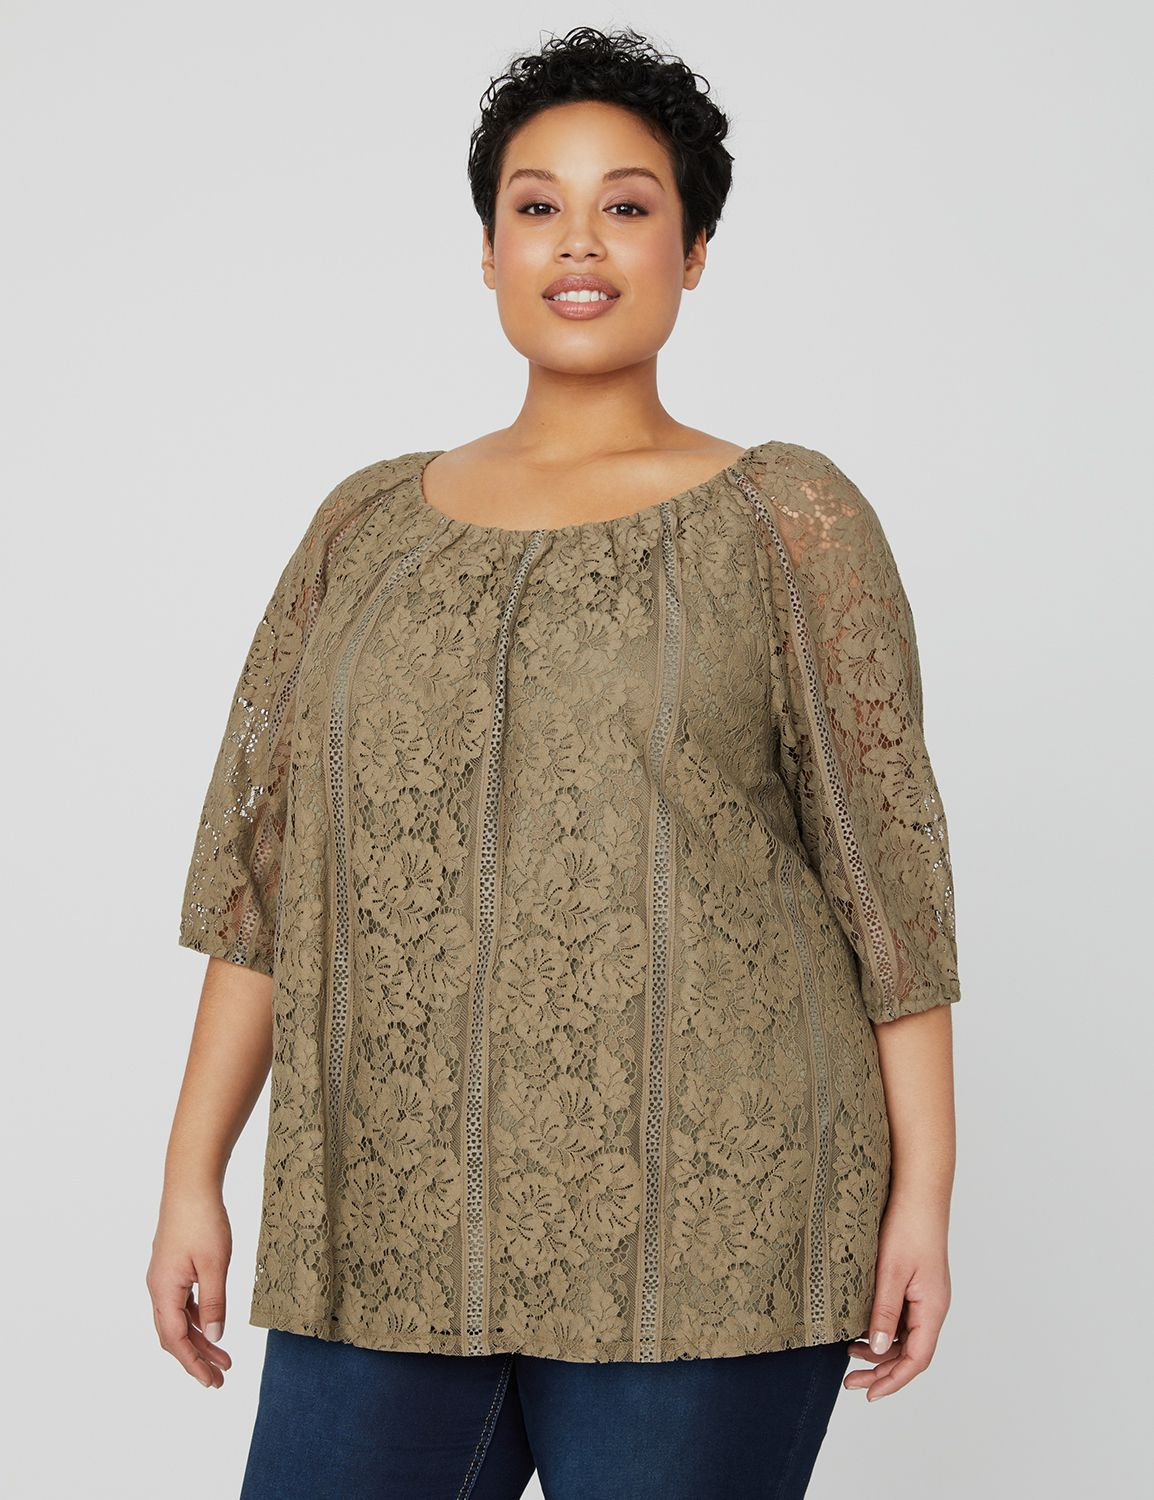 Vista Cove Lace Top 1089762 Nuance Crochet Lace Top MP-300098887